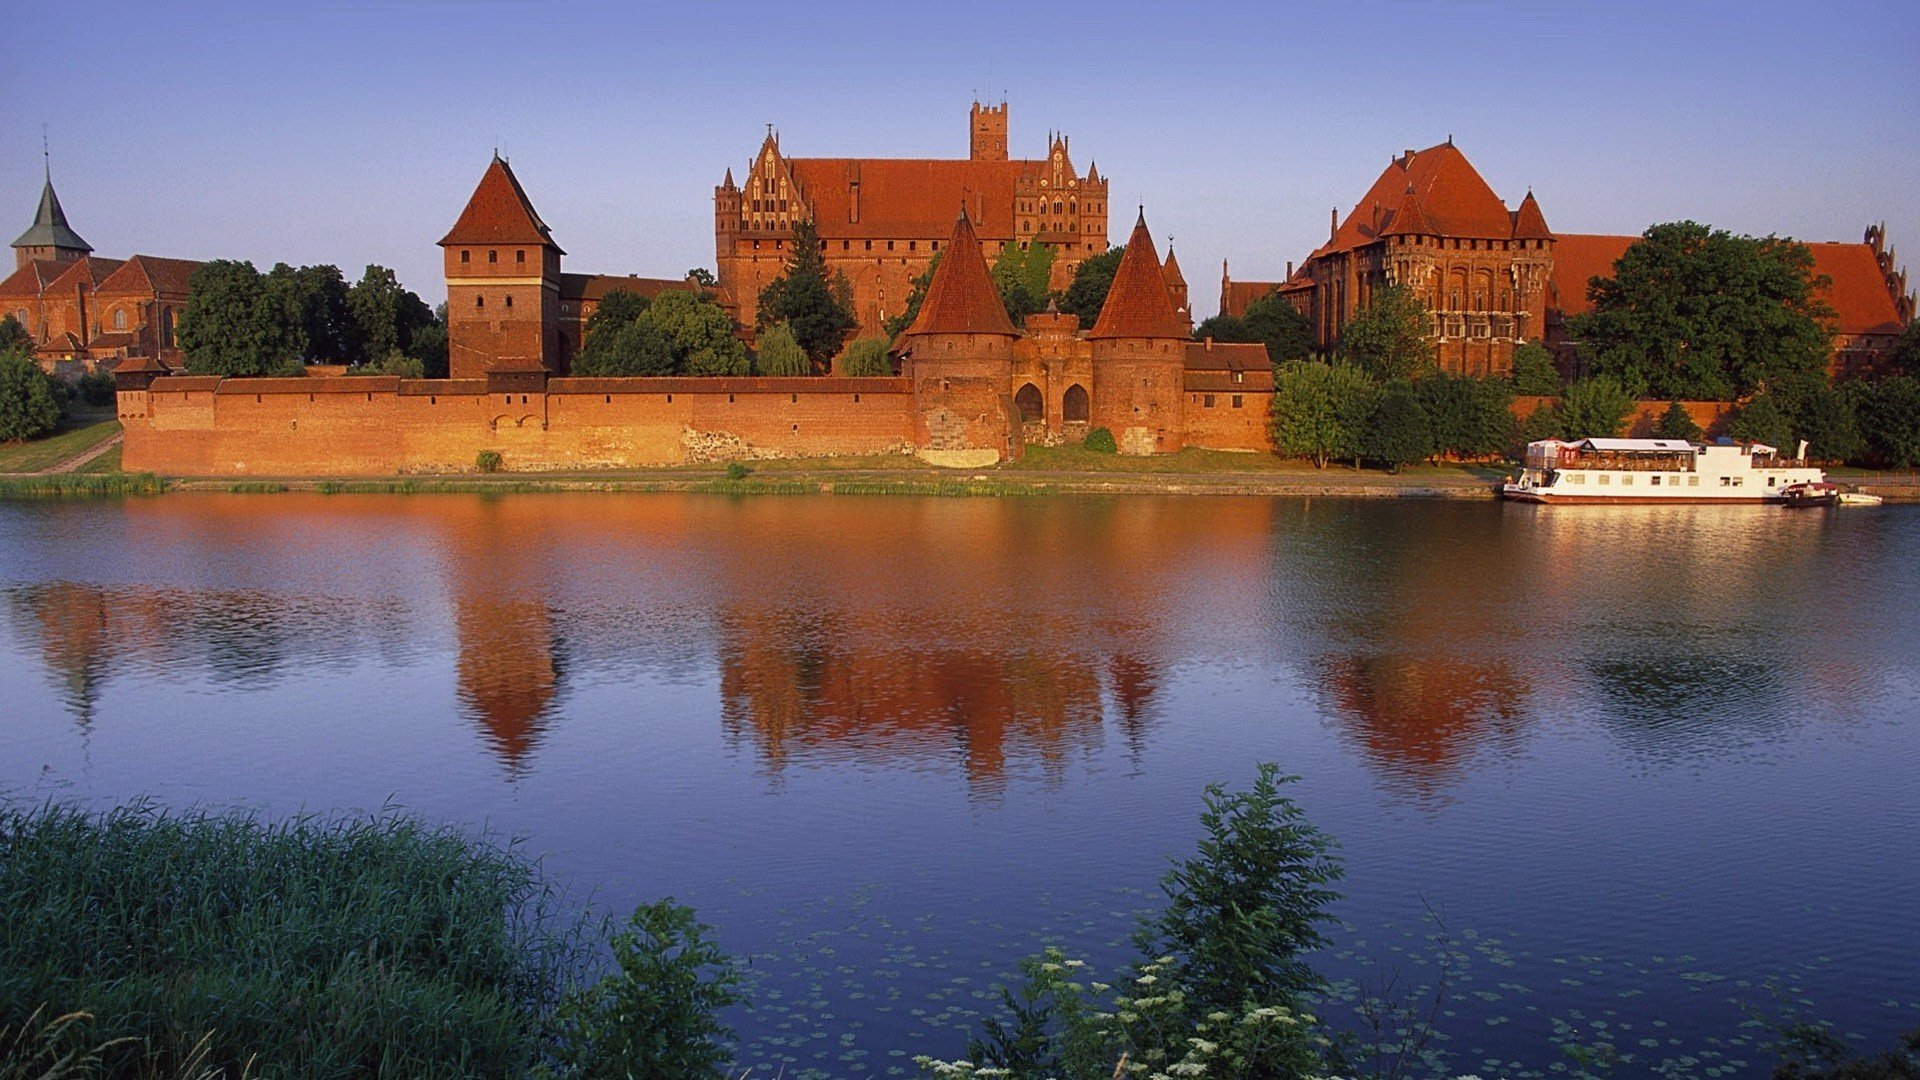 5760x1080 Anime Wallpaper Poland Malbork Castle Hd Wallpapers Desktop And Mobile